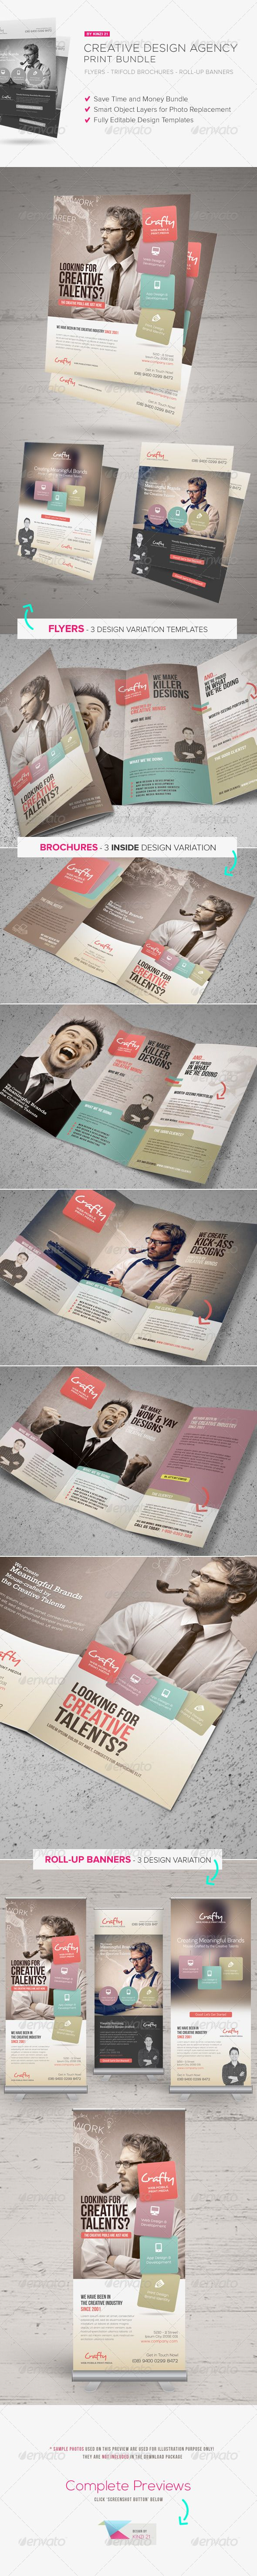 Creative Design Agency Print Bundle are design templates created for sale on Graphic River. More info of the templates and how to get the sourcefiles can be found on this page: http://graphicriver.net/item/creative-design-agency-print-bundle/6523575?r=kinzi21